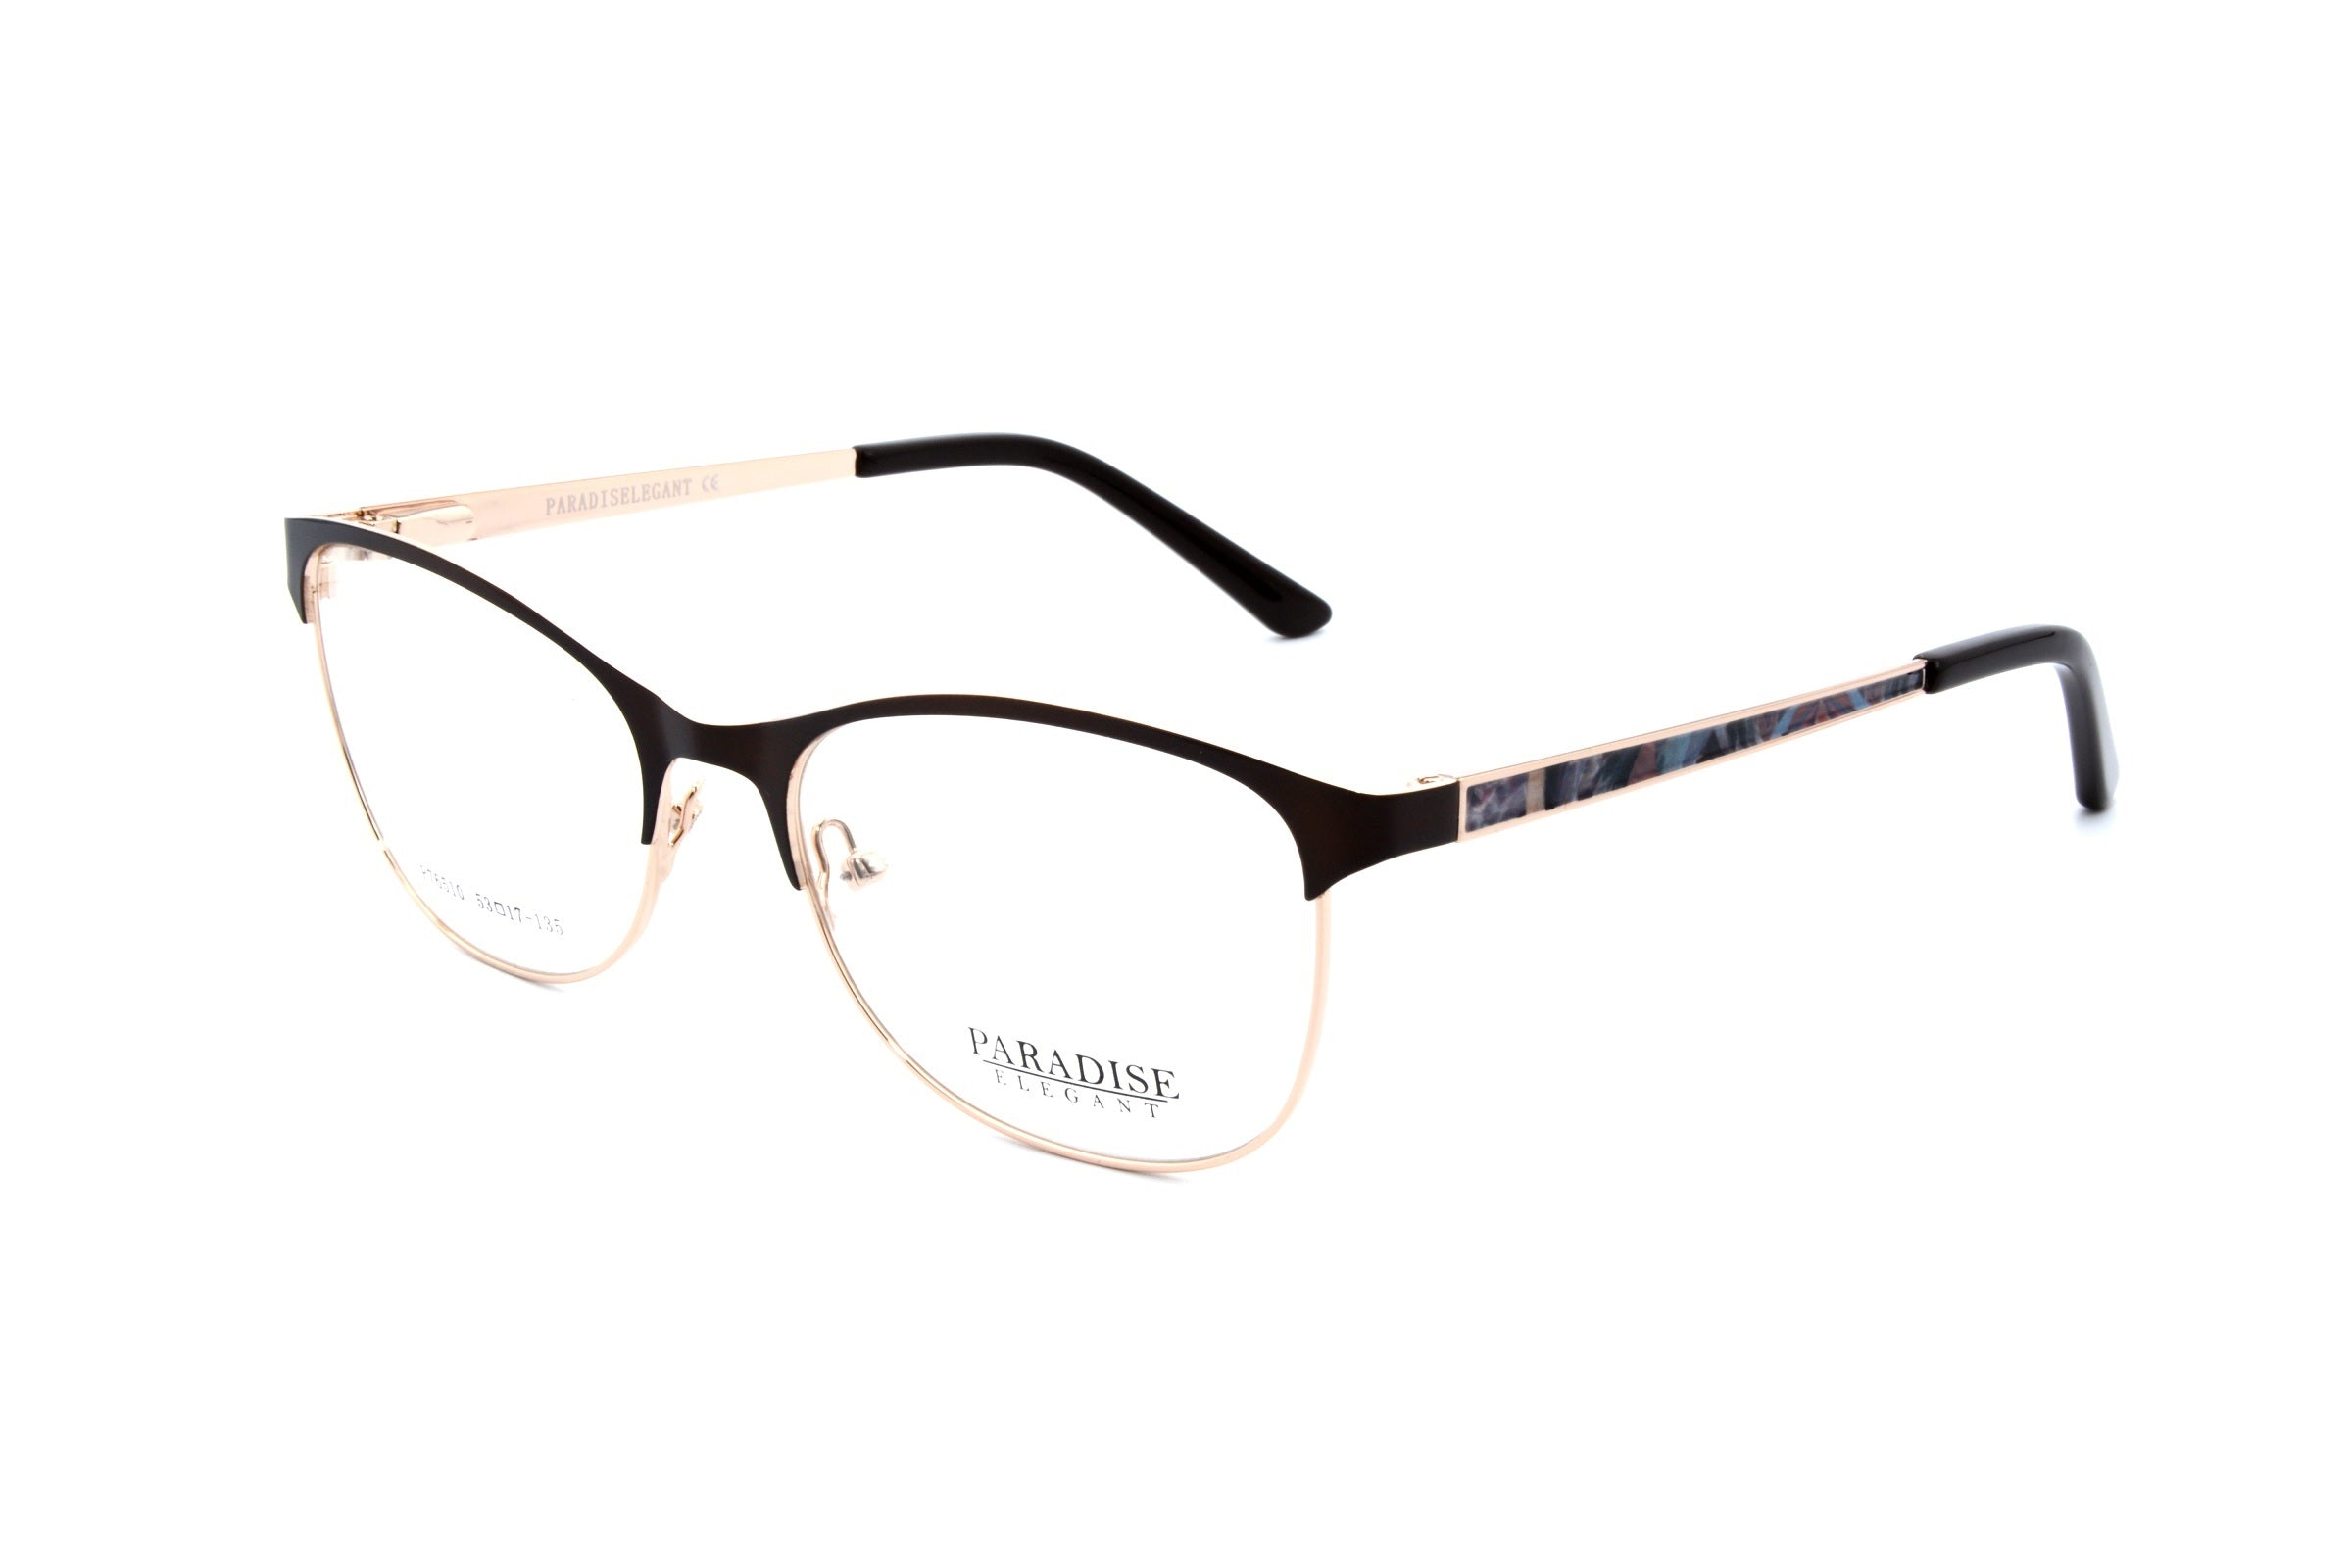 Paradise eyewear 76510, C4 - Optics Trading